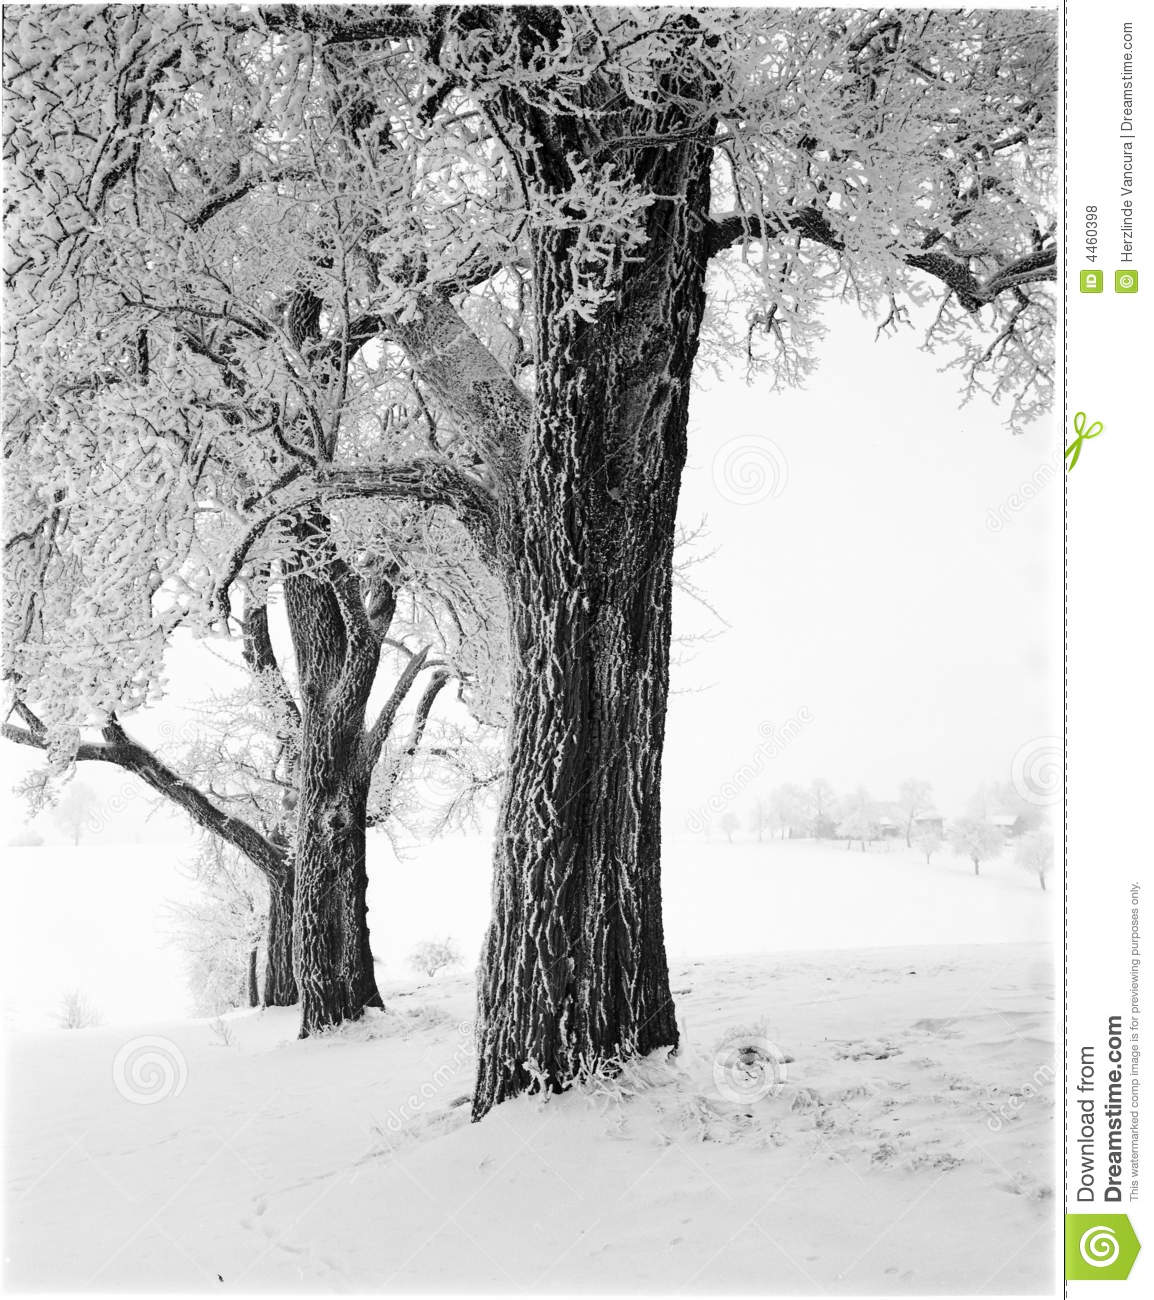 Some tall apple trees covered with snow winter landscape